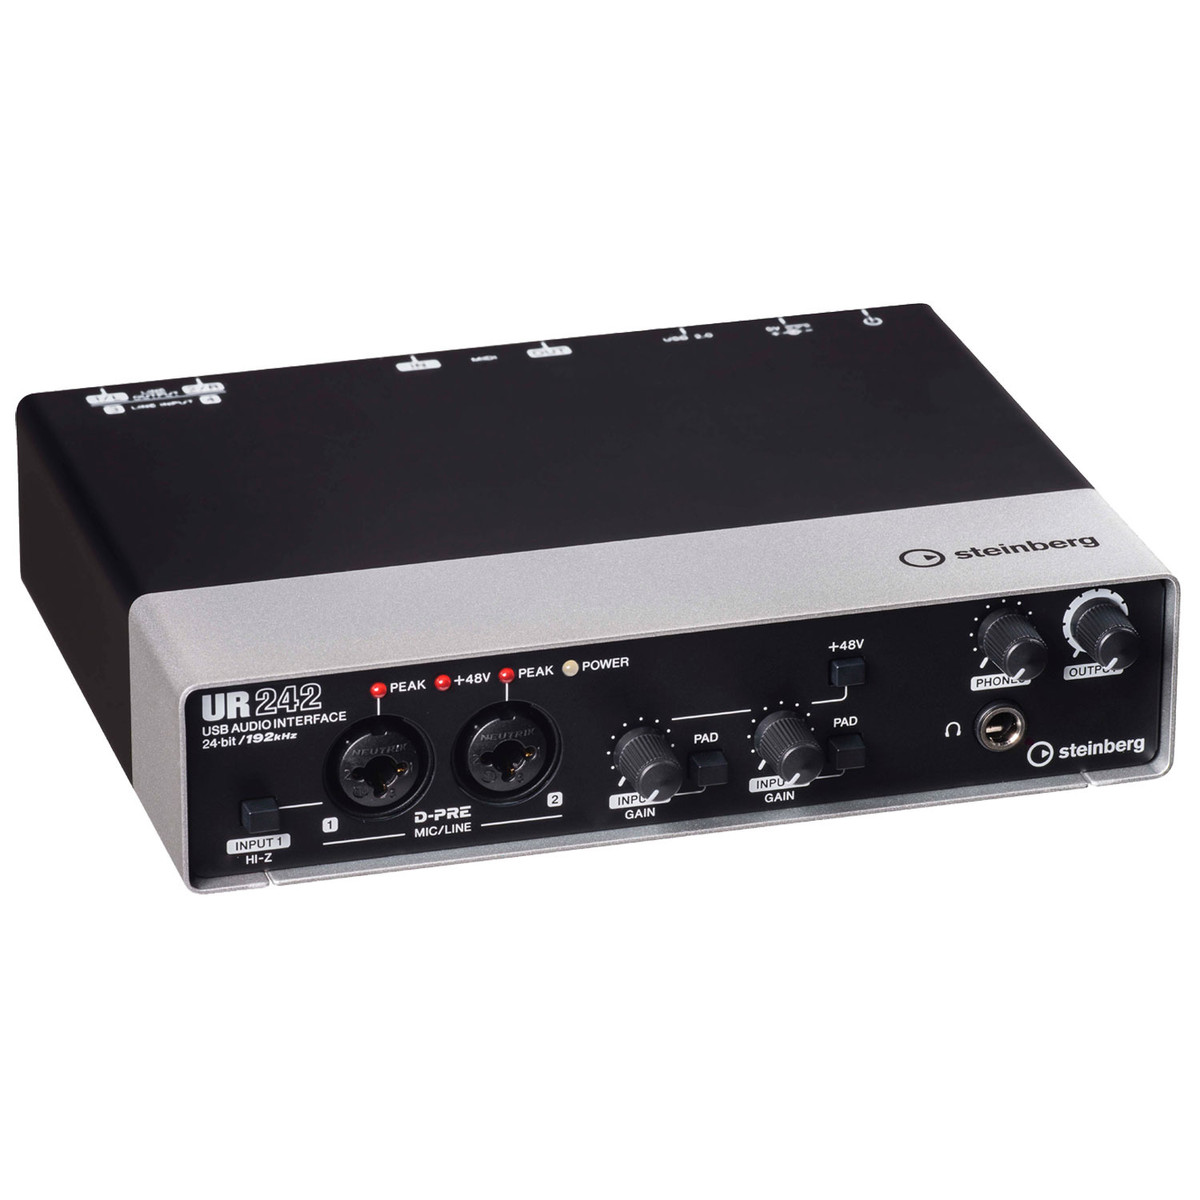 steinberg ur242 usb audio interface at gear4music. Black Bedroom Furniture Sets. Home Design Ideas